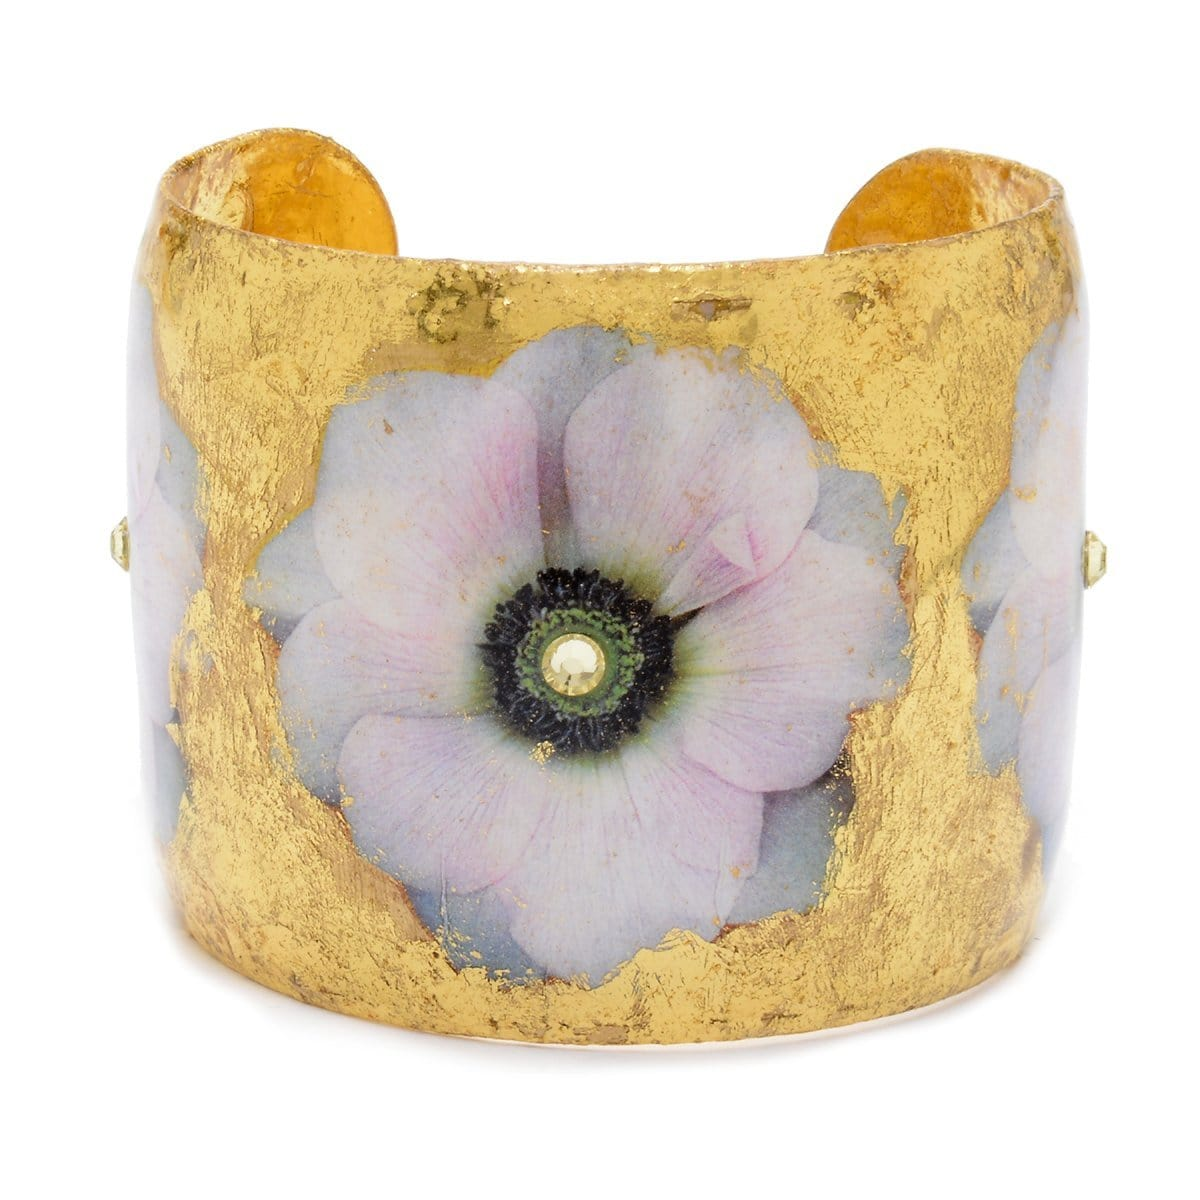 "Anemone 2"" Gold Cuff - GN127 30903-Evocateur-Renee Taylor Gallery"